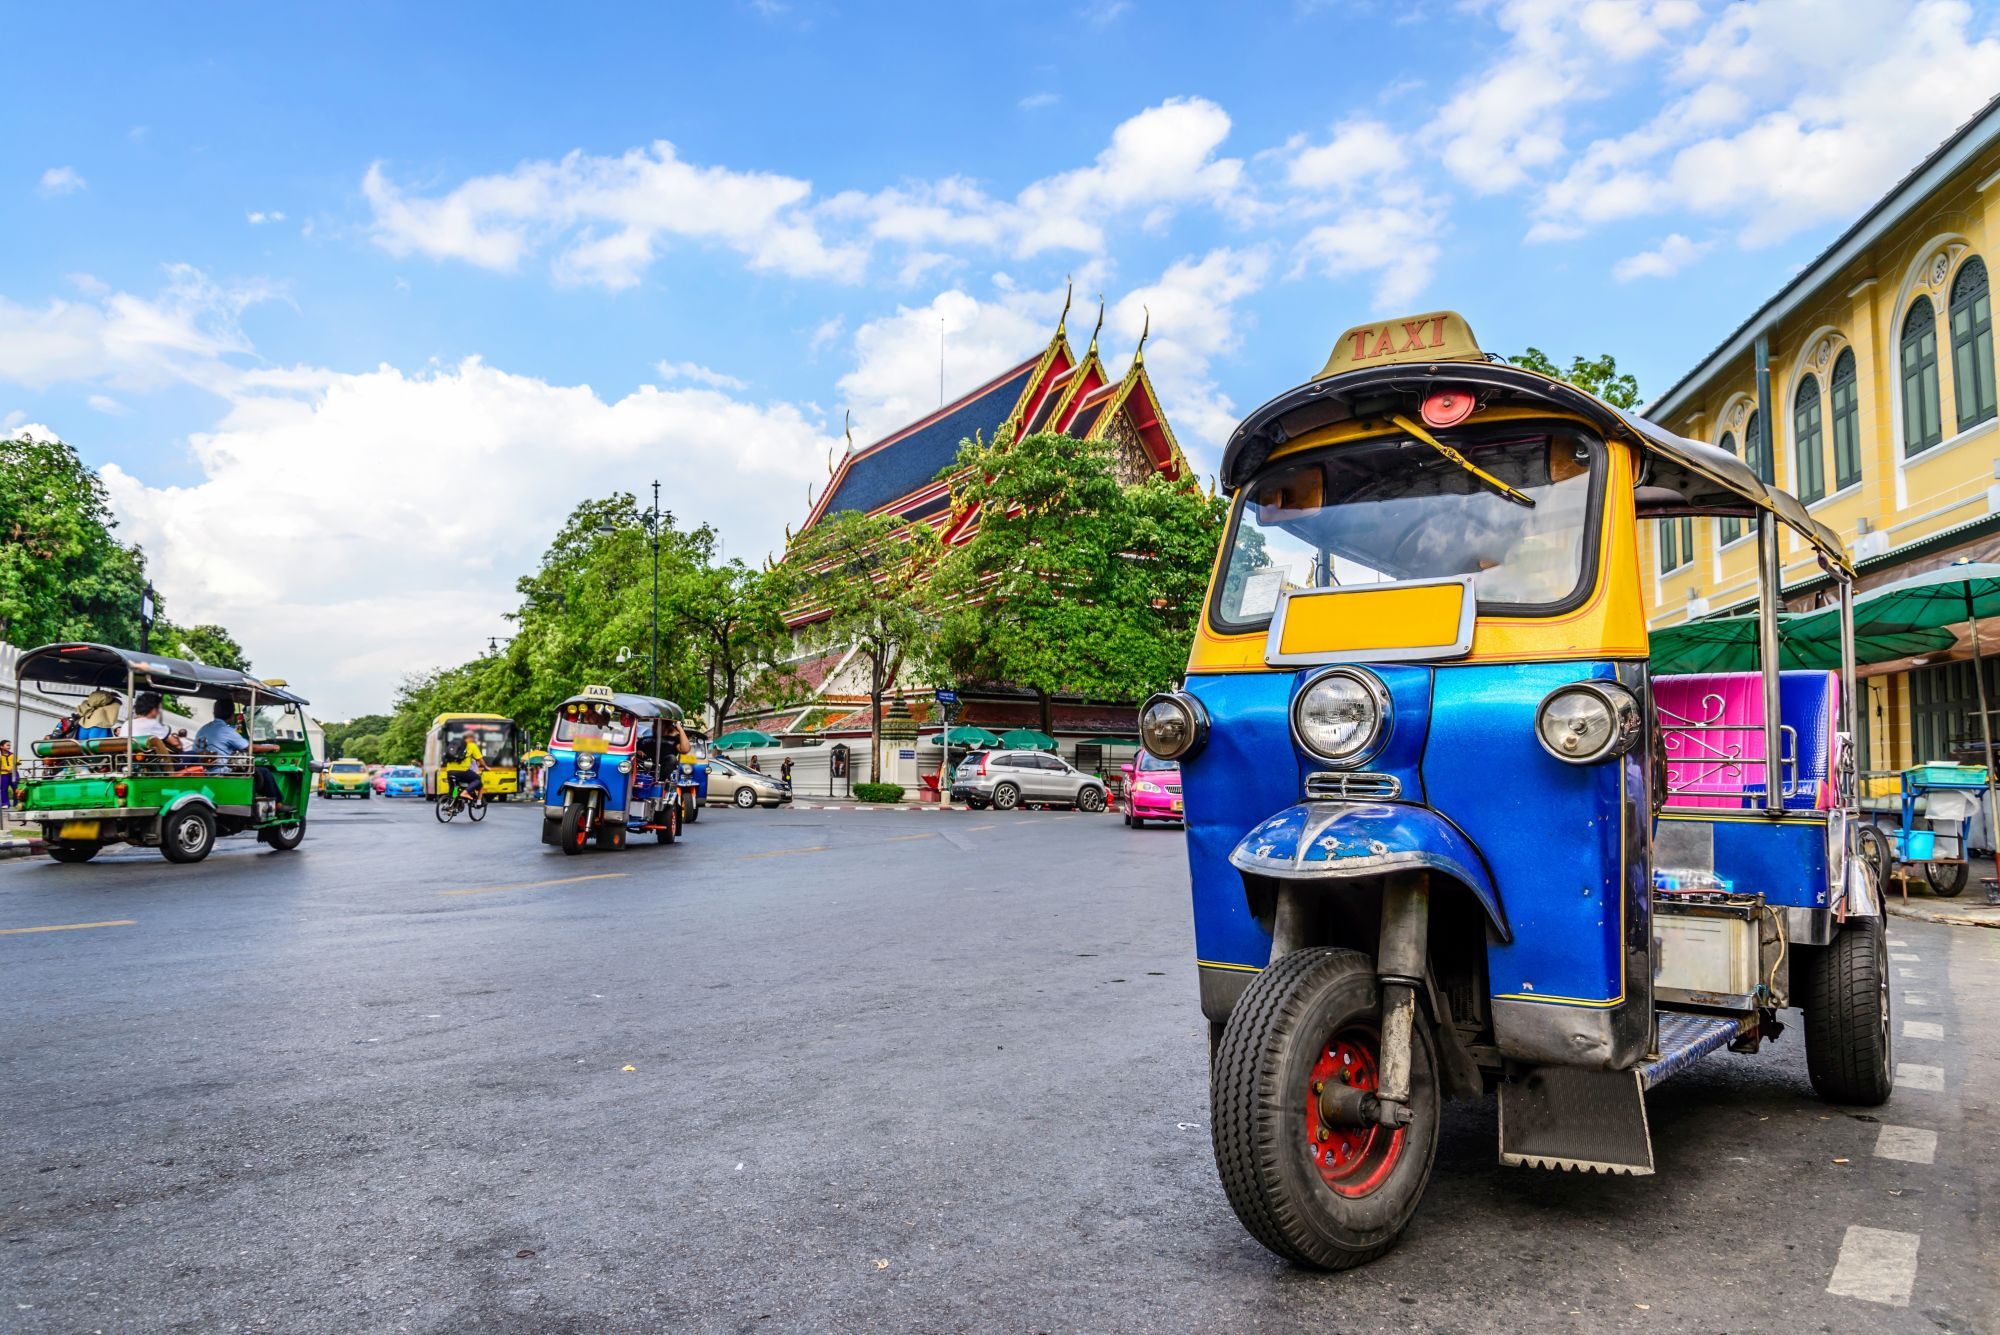 Blog artikel 'Food- en tuktuk tour in Bangkok'